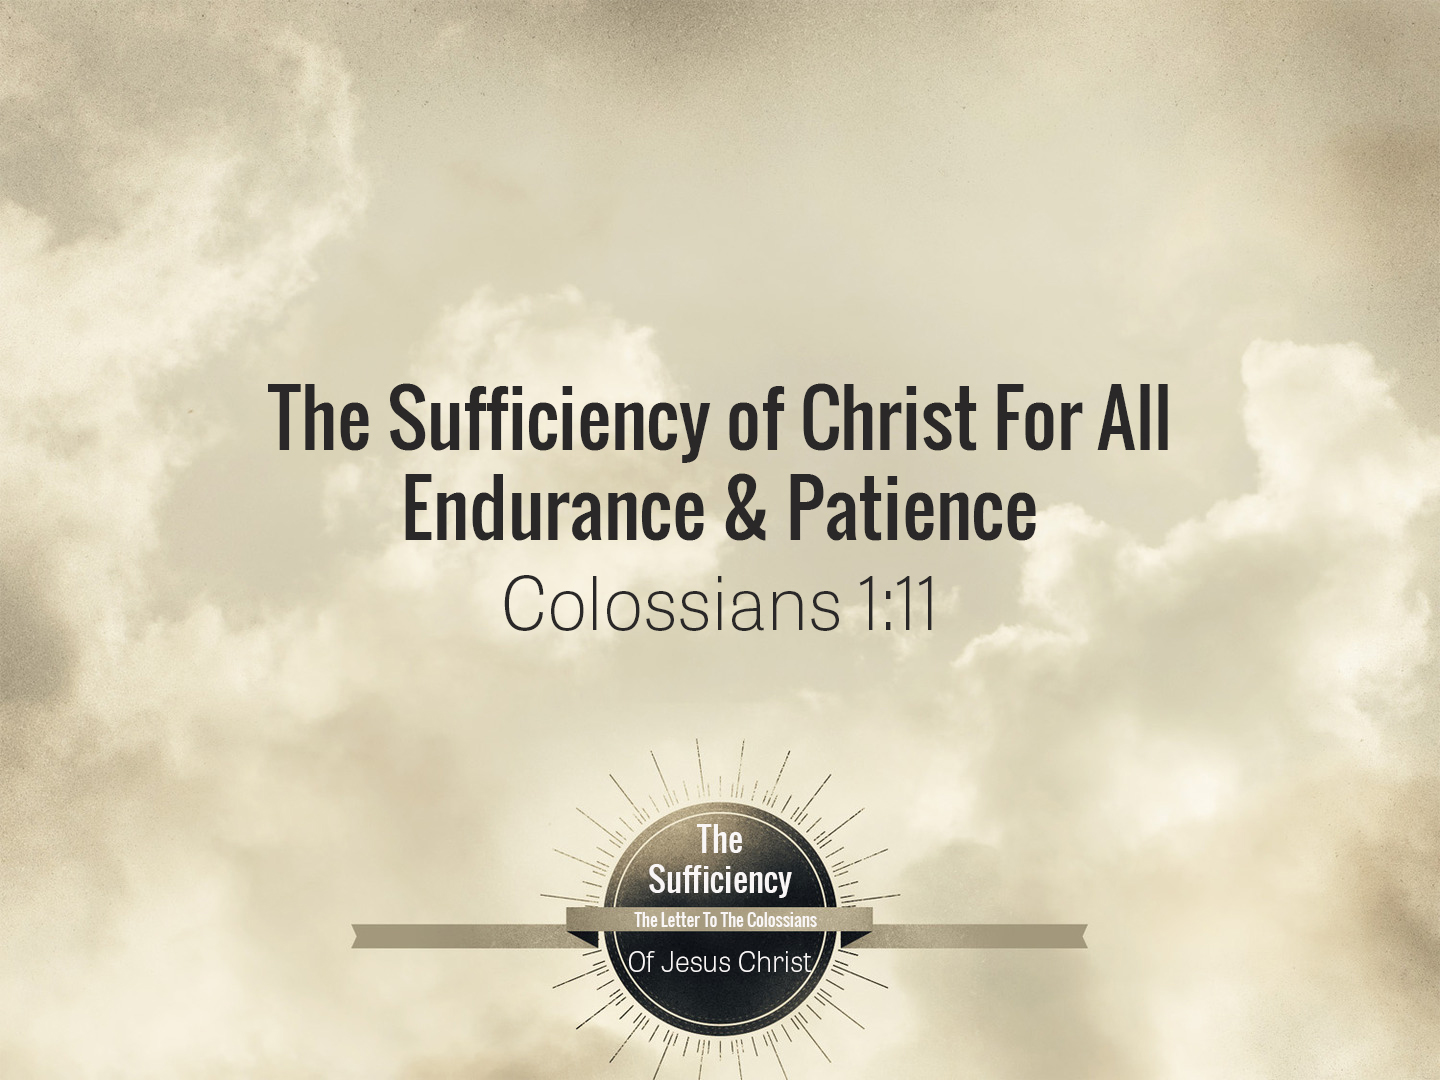 Colossians 1v11 The Sufficiency Of Christ For All Endurance & Patience